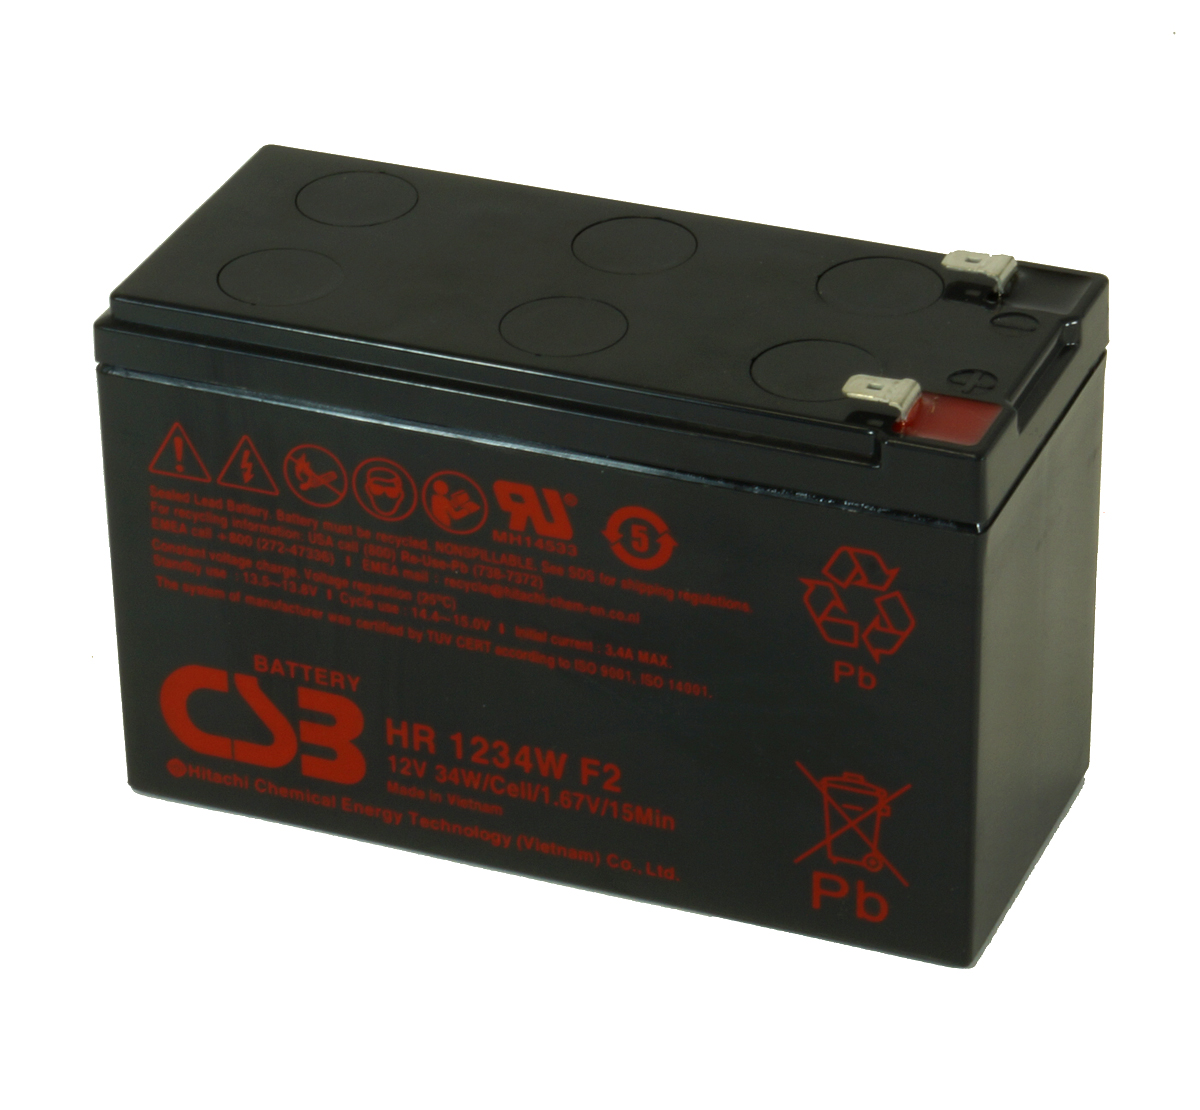 MDS2551 UPS Battery Kit for MGE AB2551